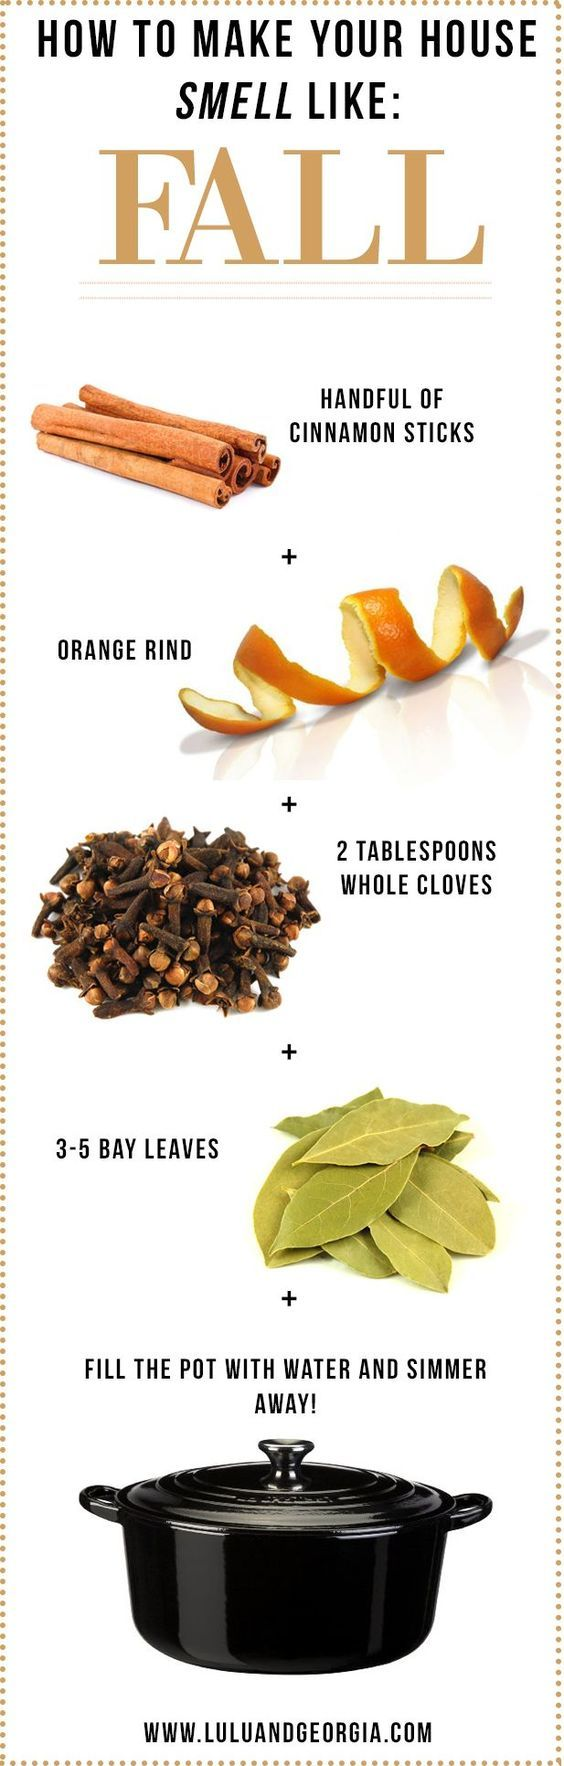 These 8 smell hacks are THE BEST! I'm so happy I found these GREAT tips! Now I can make my home smell like Fall and the holidays! Definitely pinning for later!